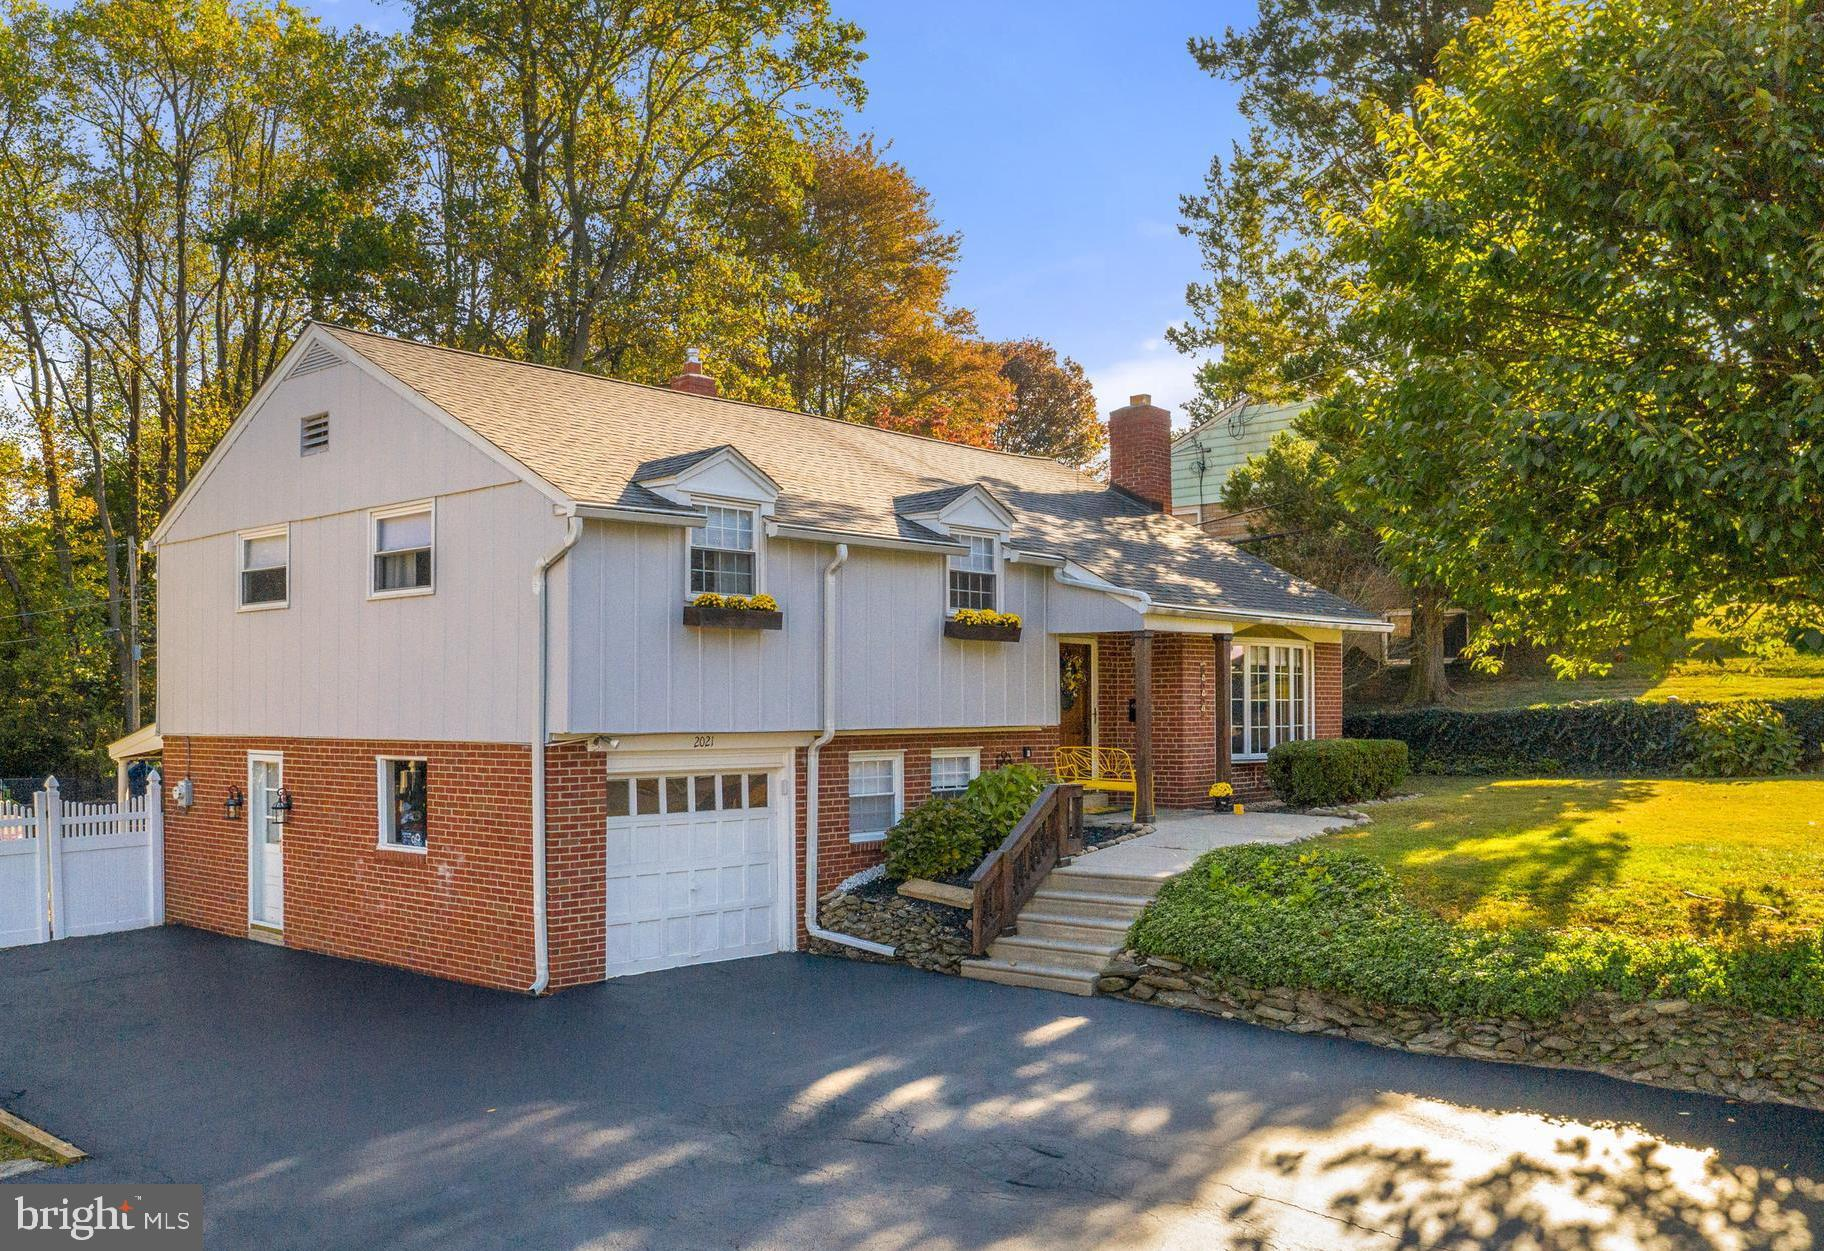 2021 SPRINGHOUSE ROAD, BROOMALL, PA 19008